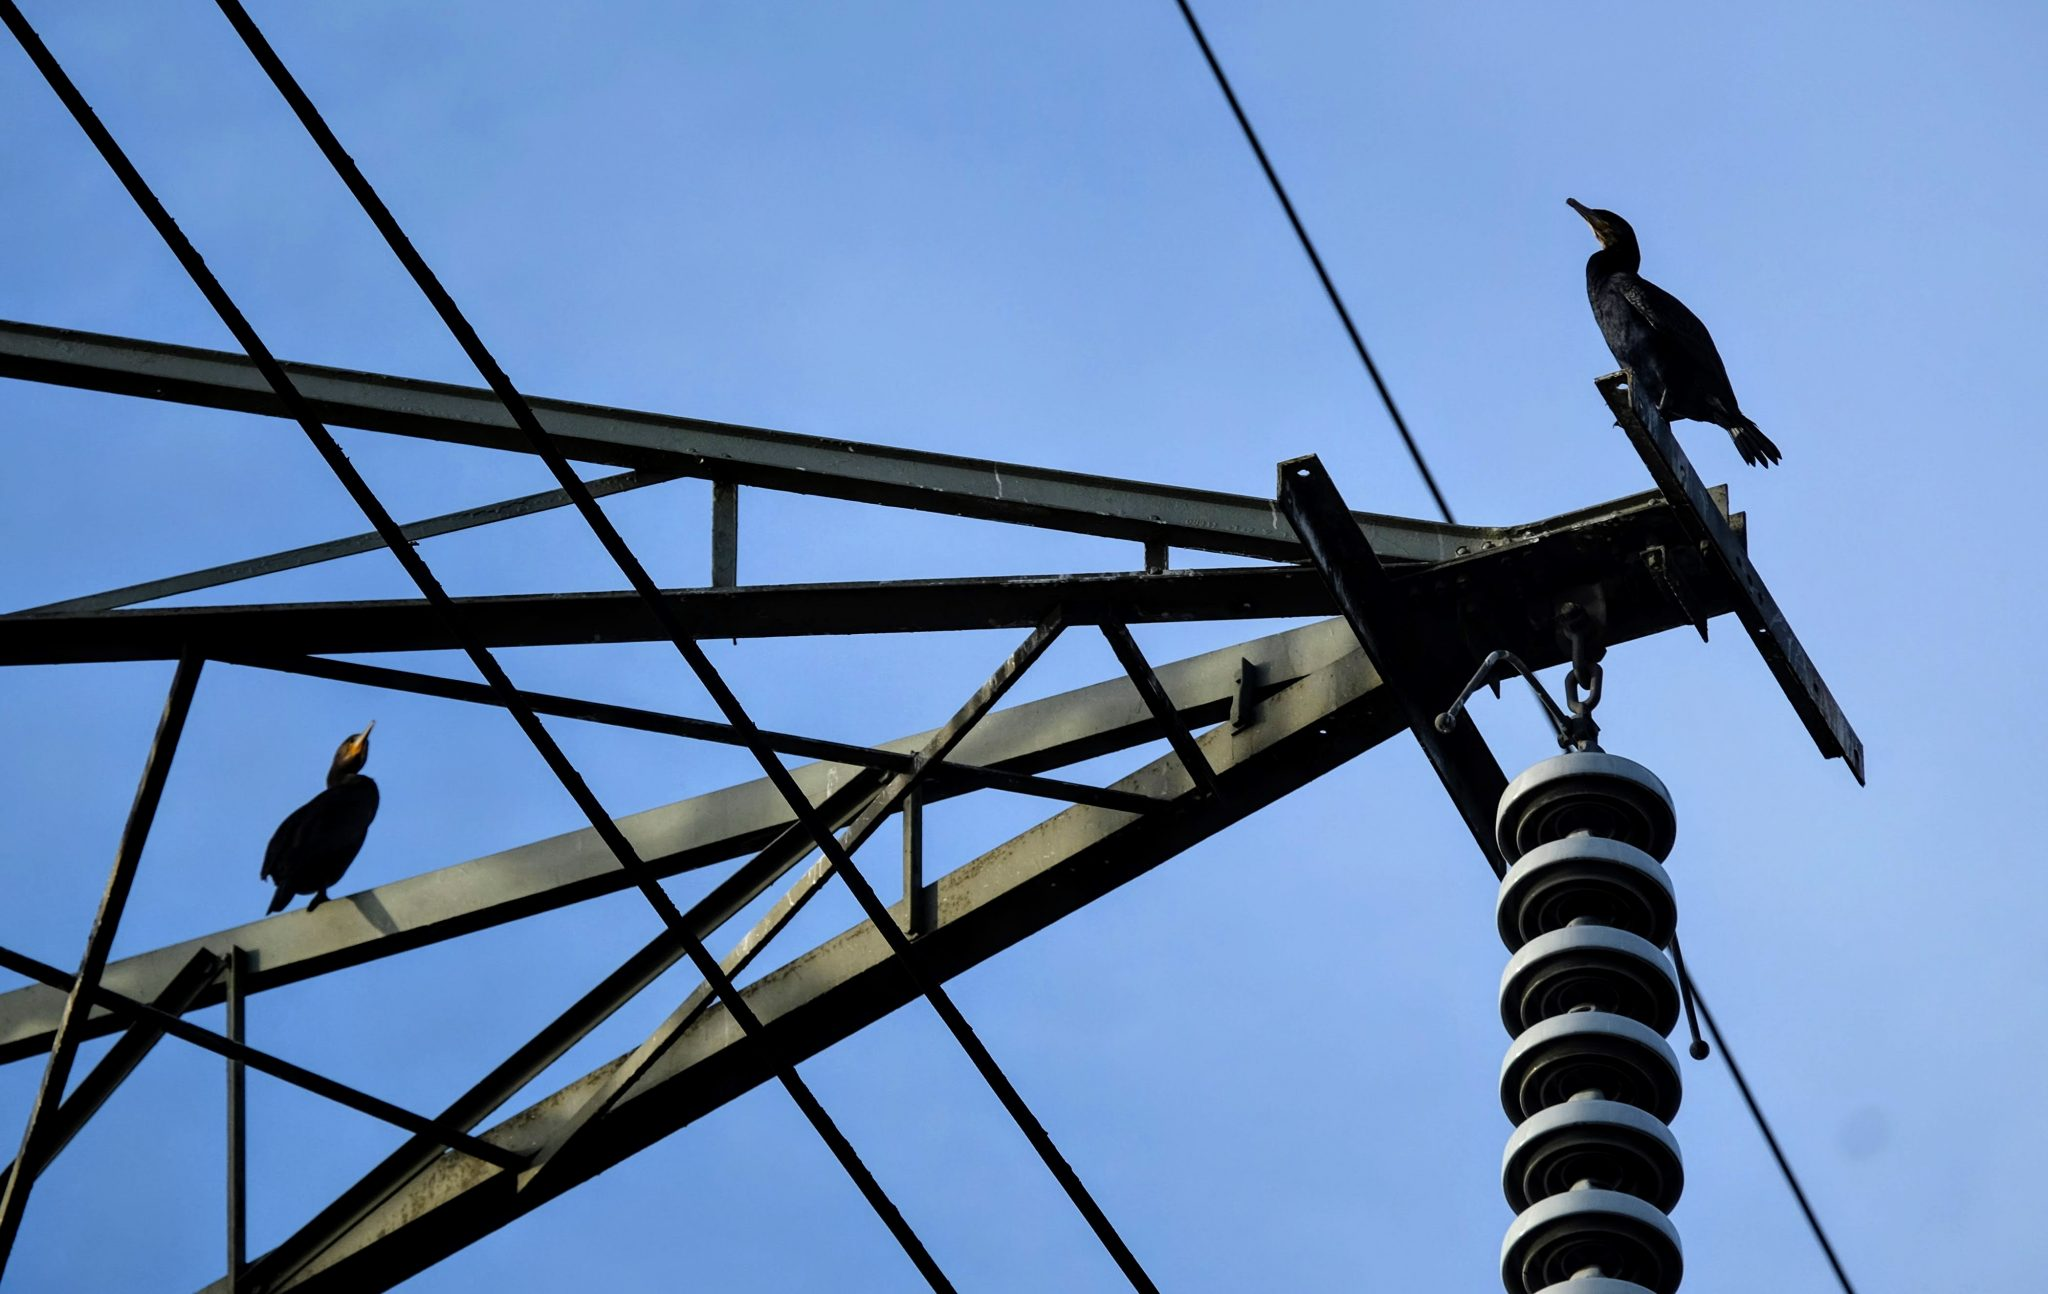 Cormorants on a pylon, Sale Water Park, Manchester